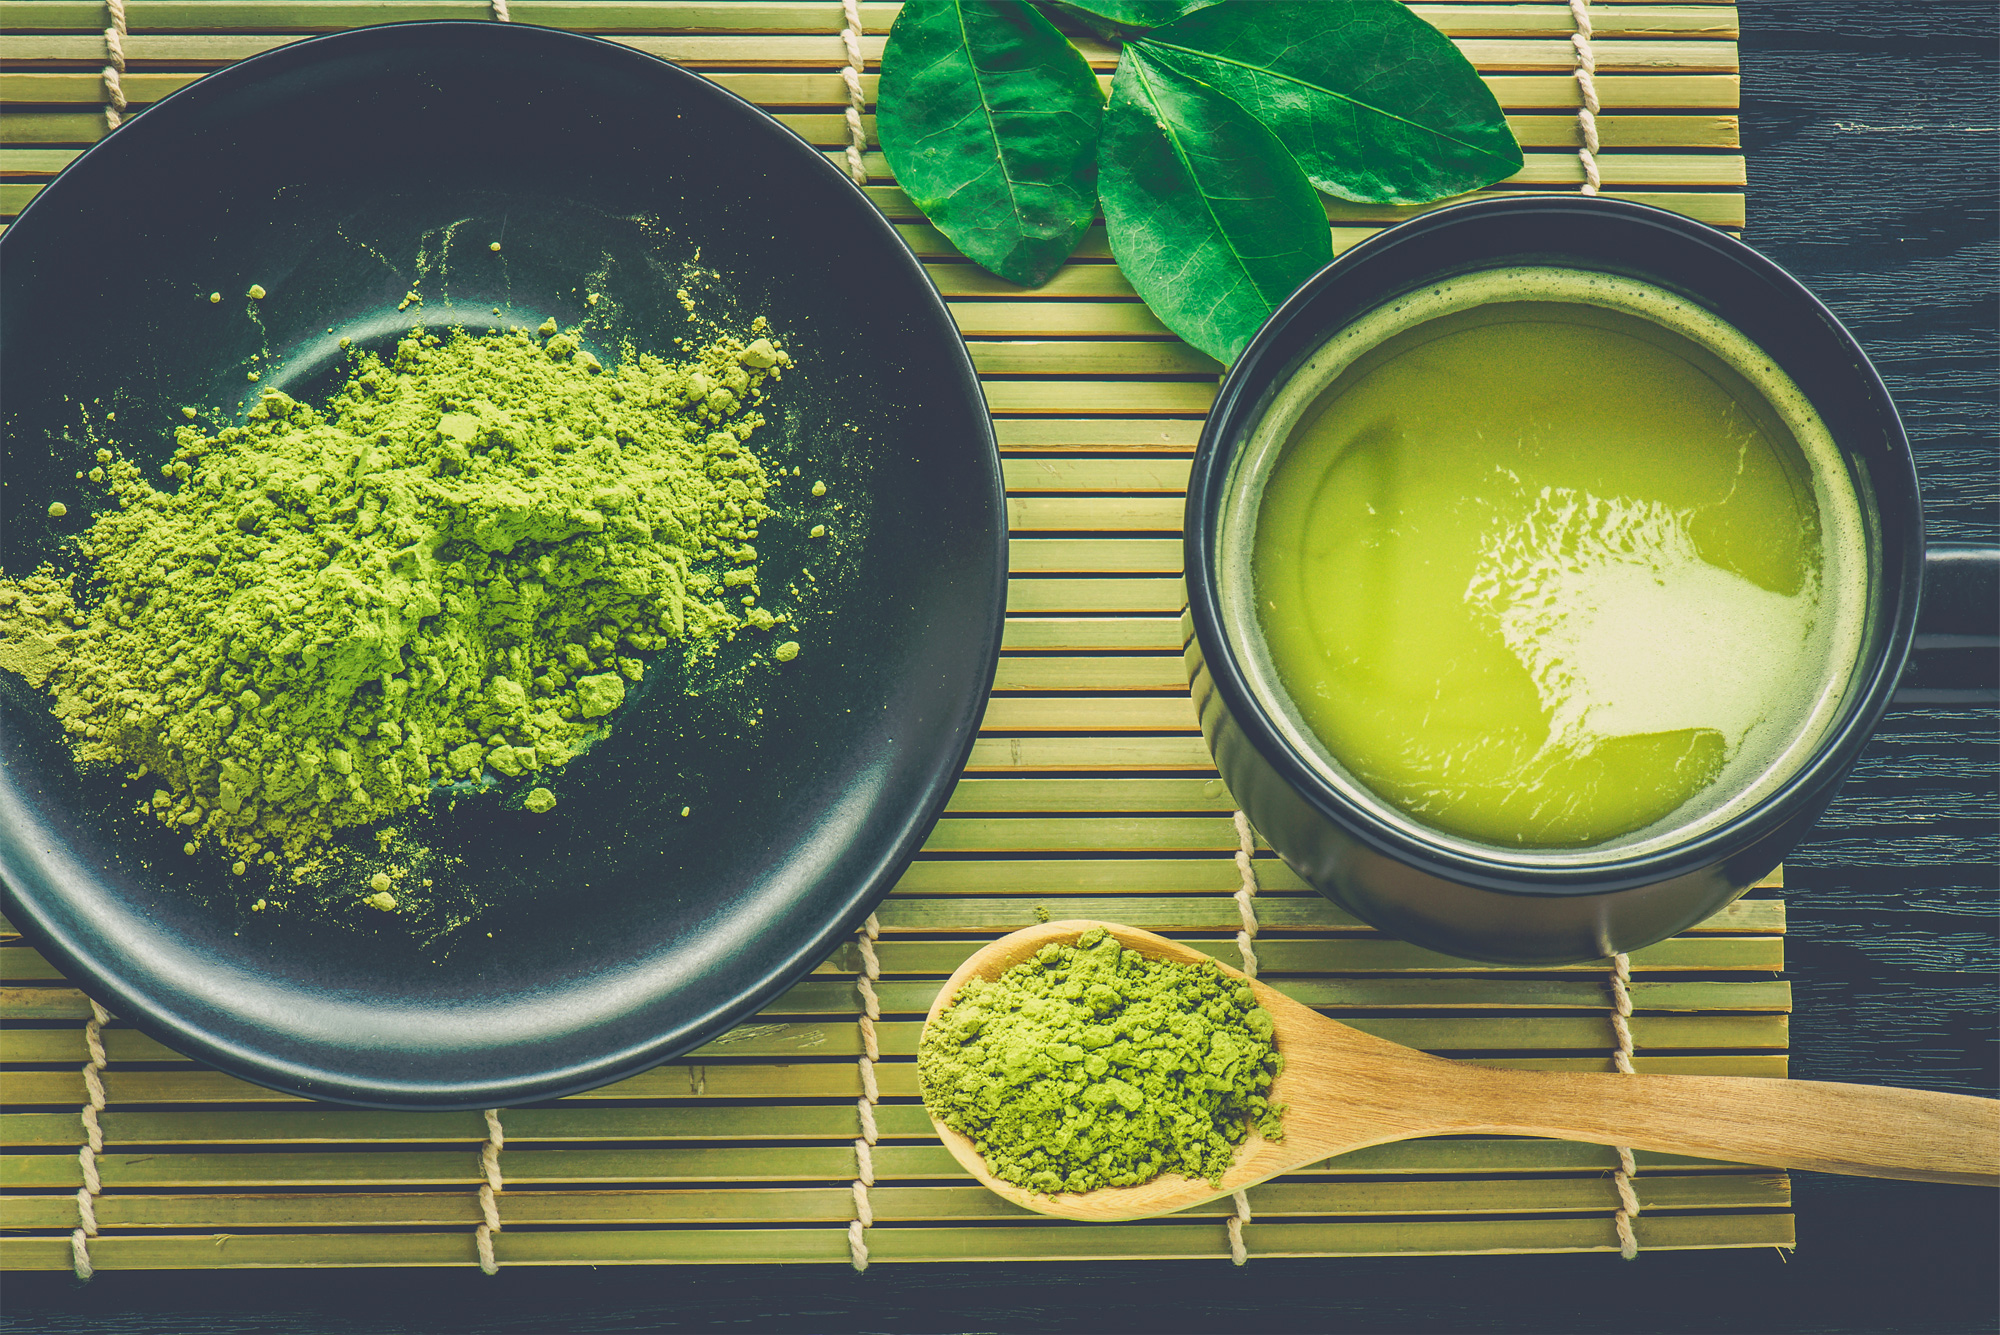 perche dovresti bere il te matcha   grand chef evolution